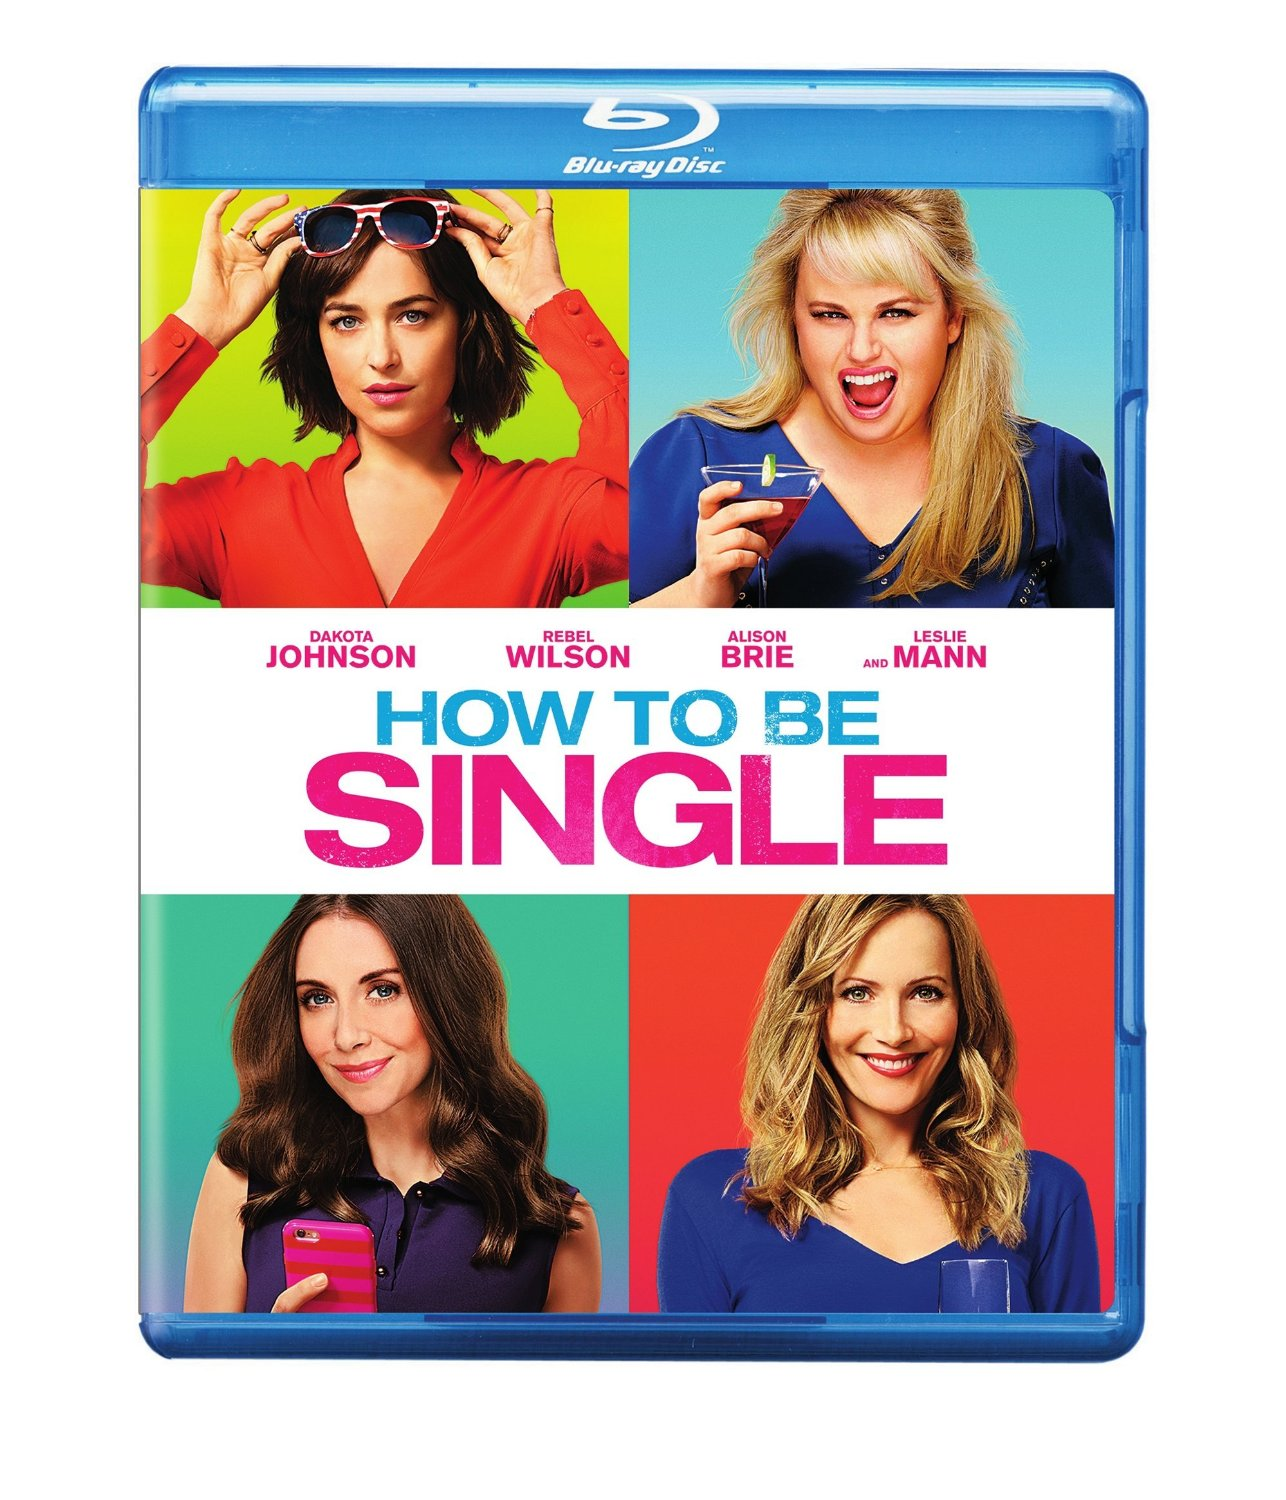 How To Be Single [Movie] - How To Be Single